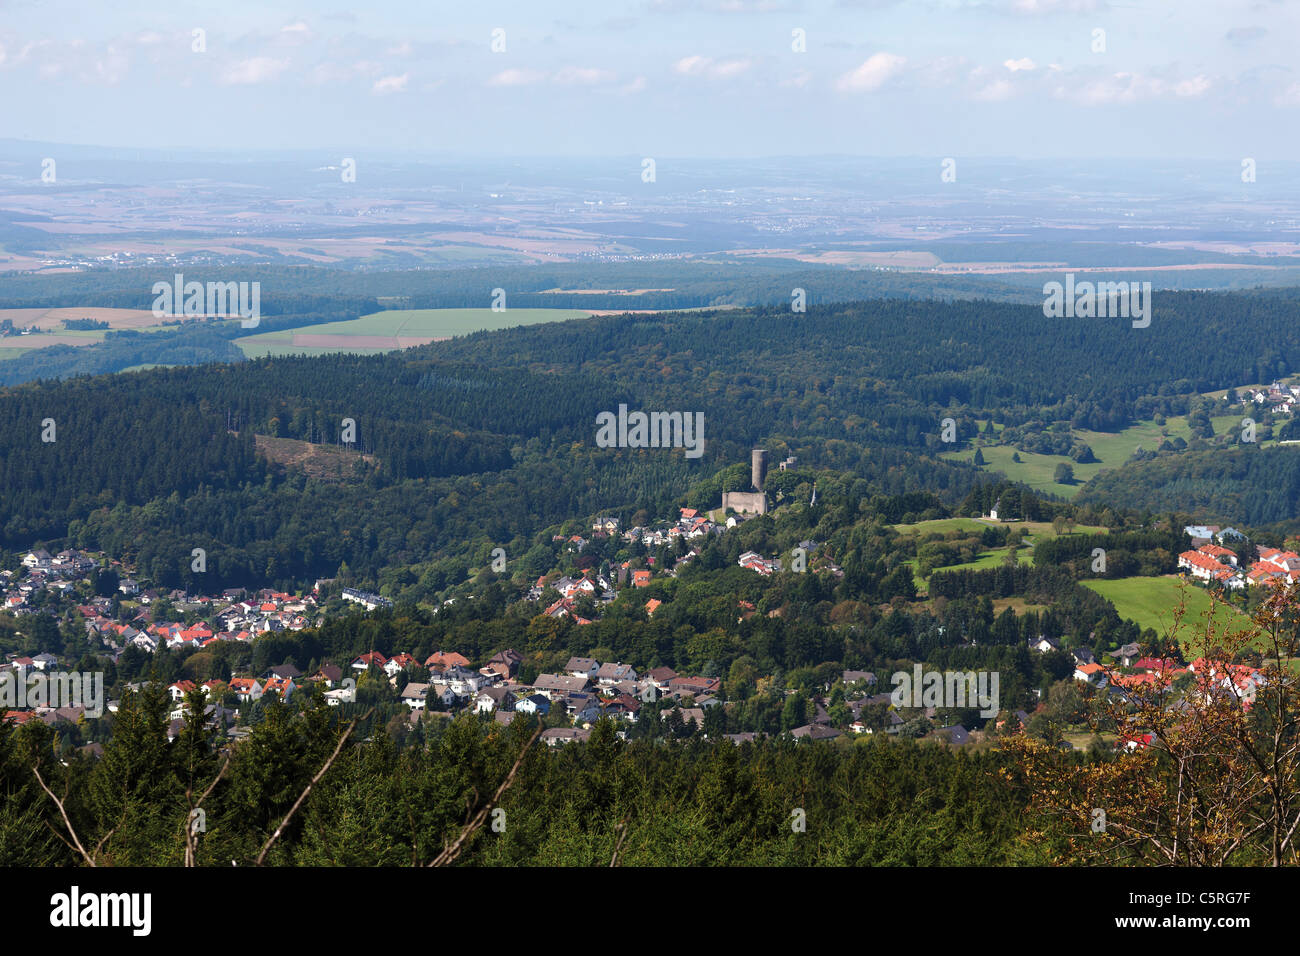 Europe, Germany, Hesse, Frankfurt, View of village and castle Stock Photo